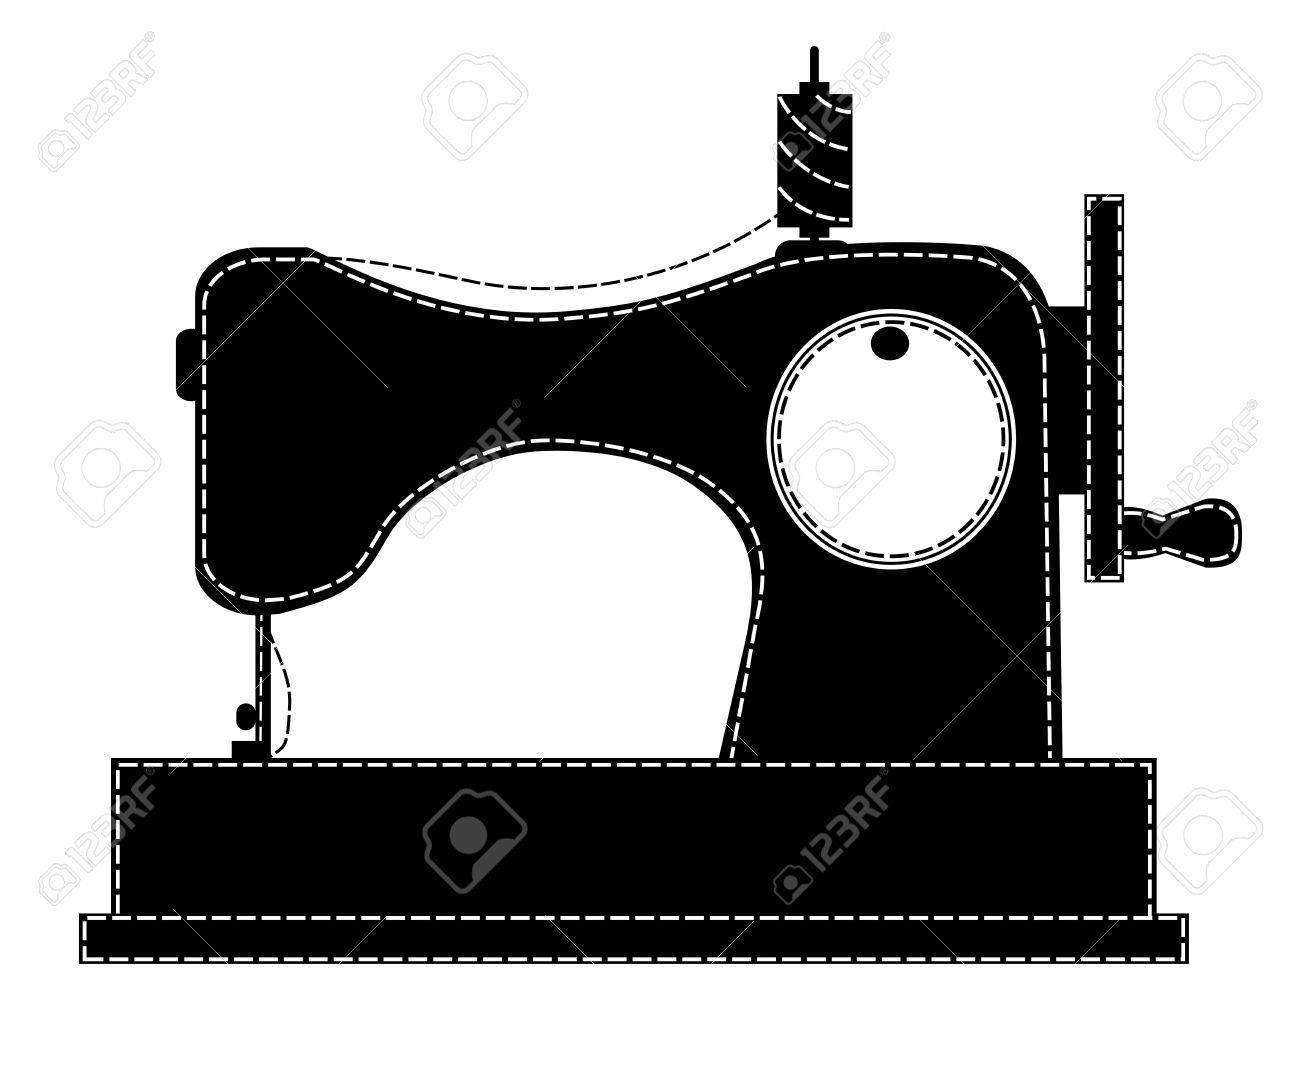 50 681 sewing stock vector illustration and royalty free sewing clipart rh 123rf com free sewing clip art/ umbrella clip art free sewing clip art borders